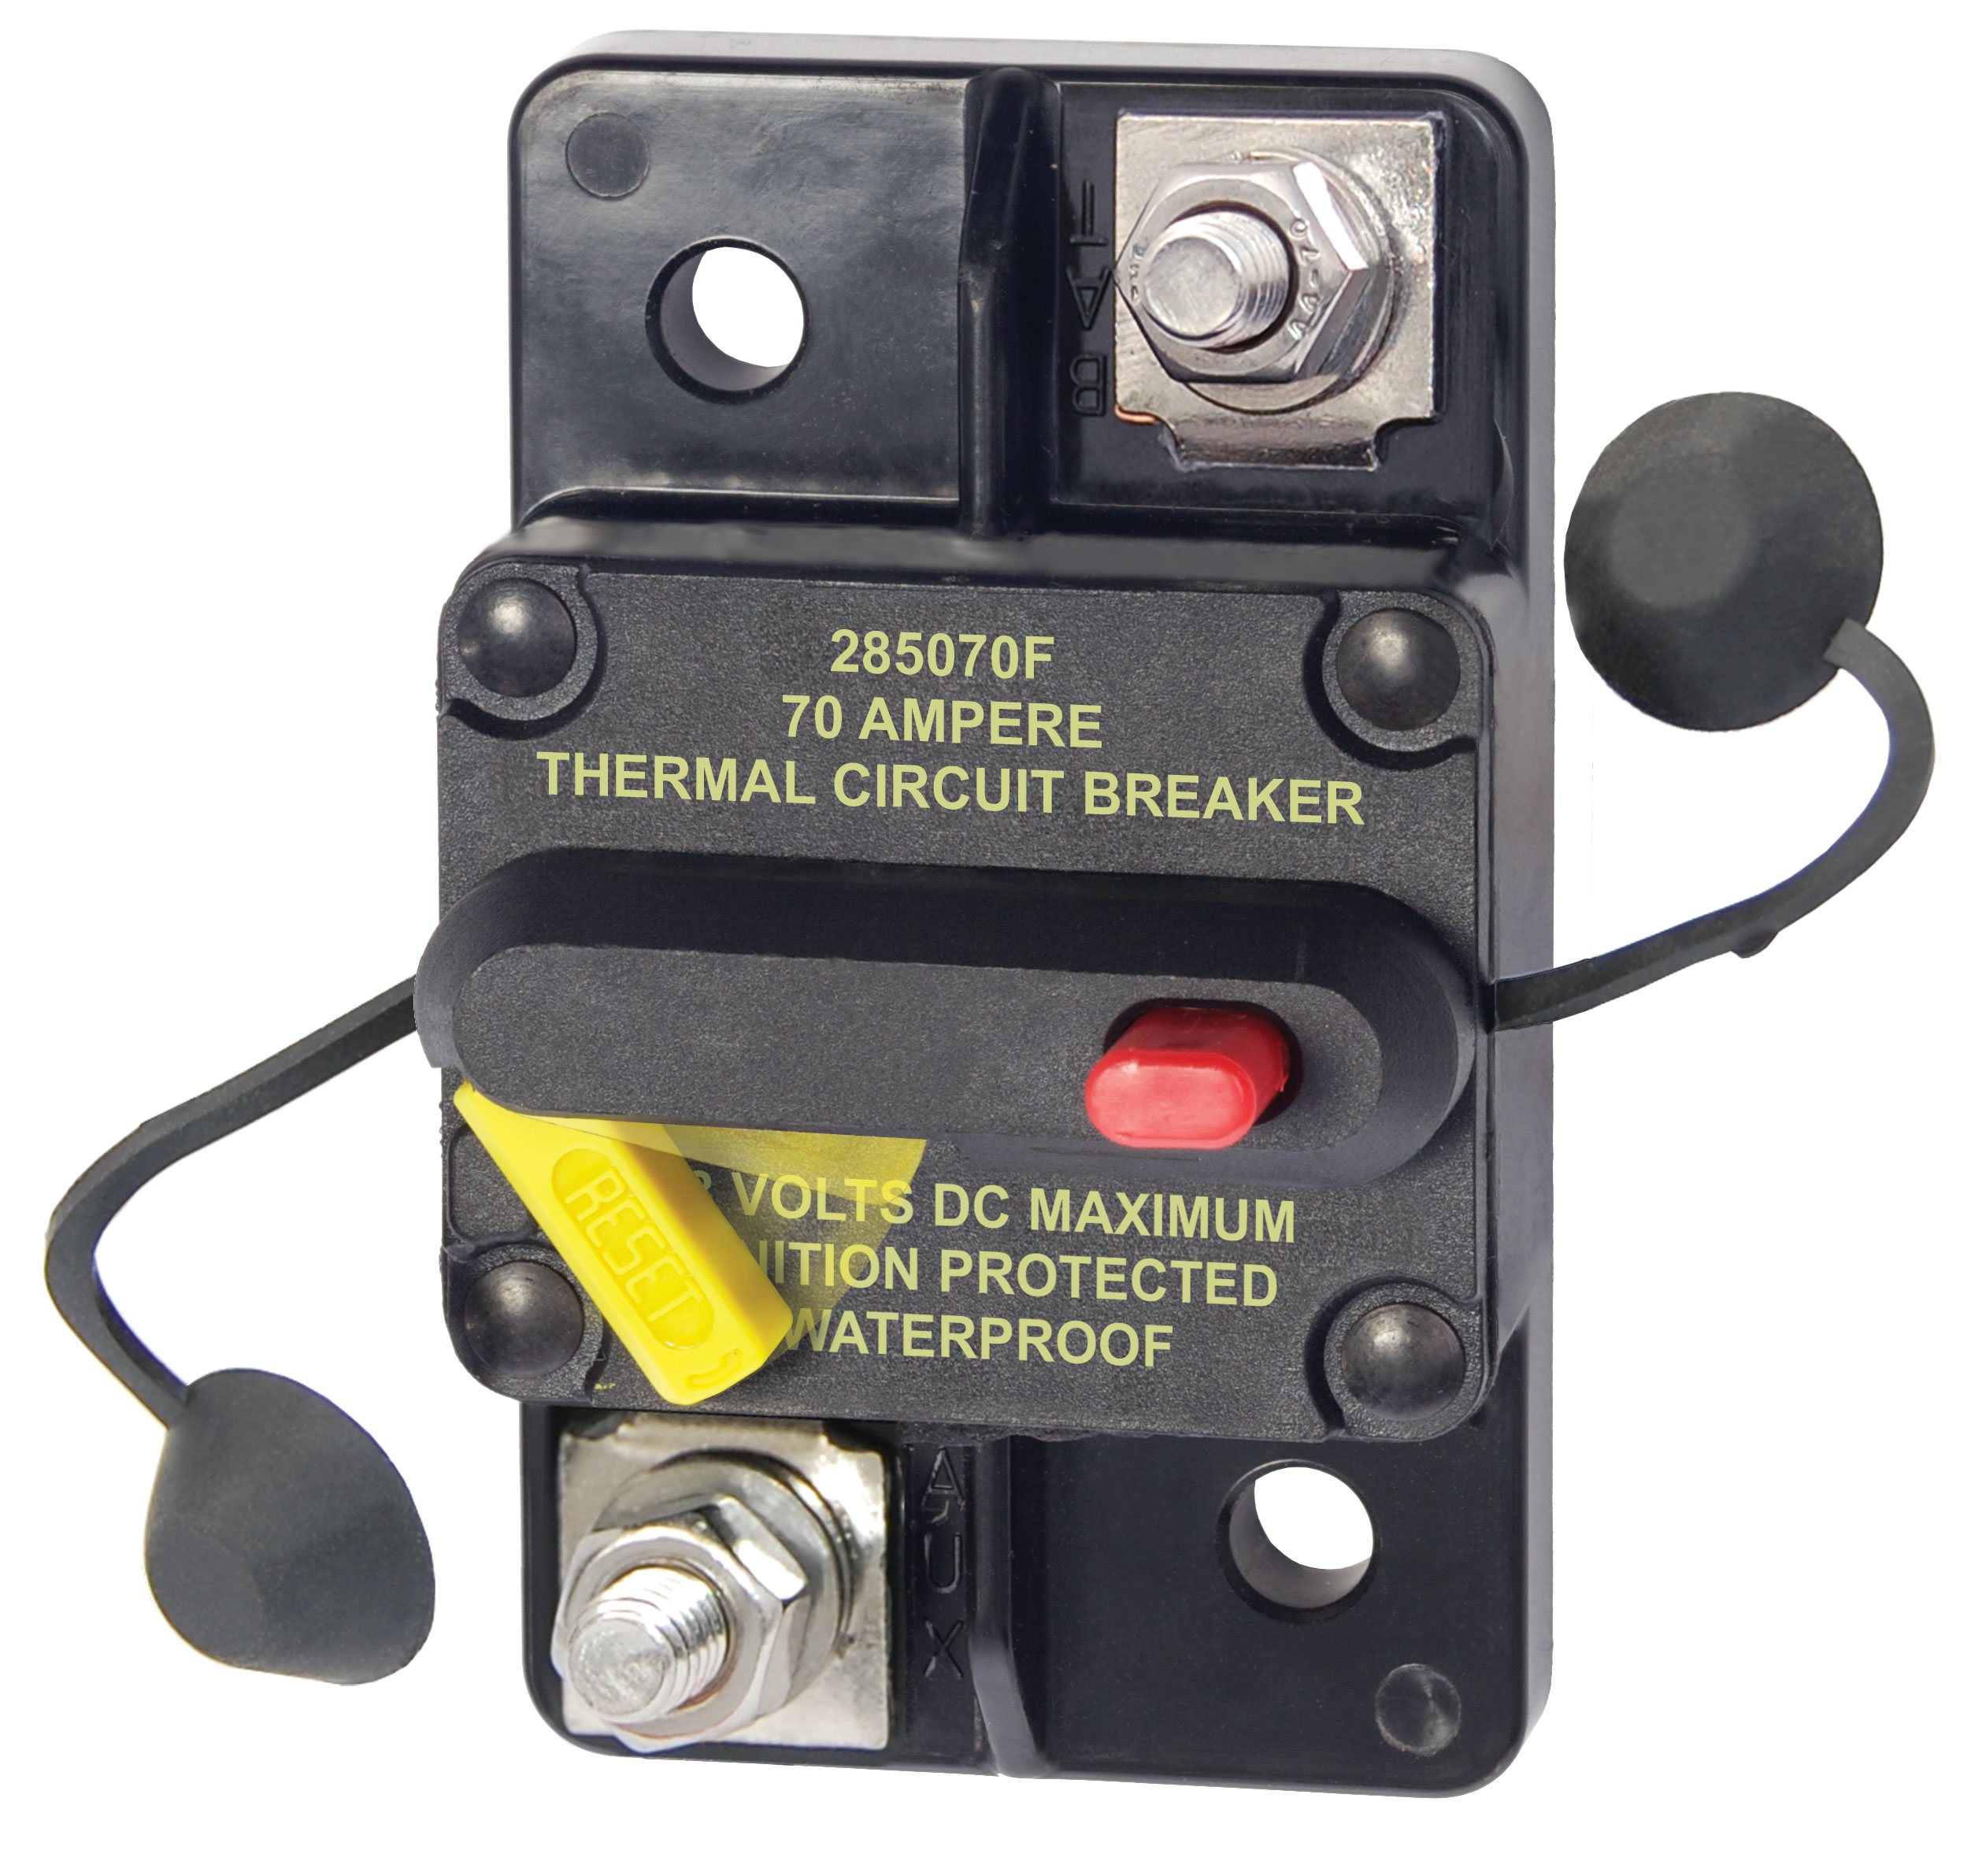 Sperry Marine Wiring Diagram 285 Series Circuit Breaker Surface Mount 70a Blue Sea Systems Product Image